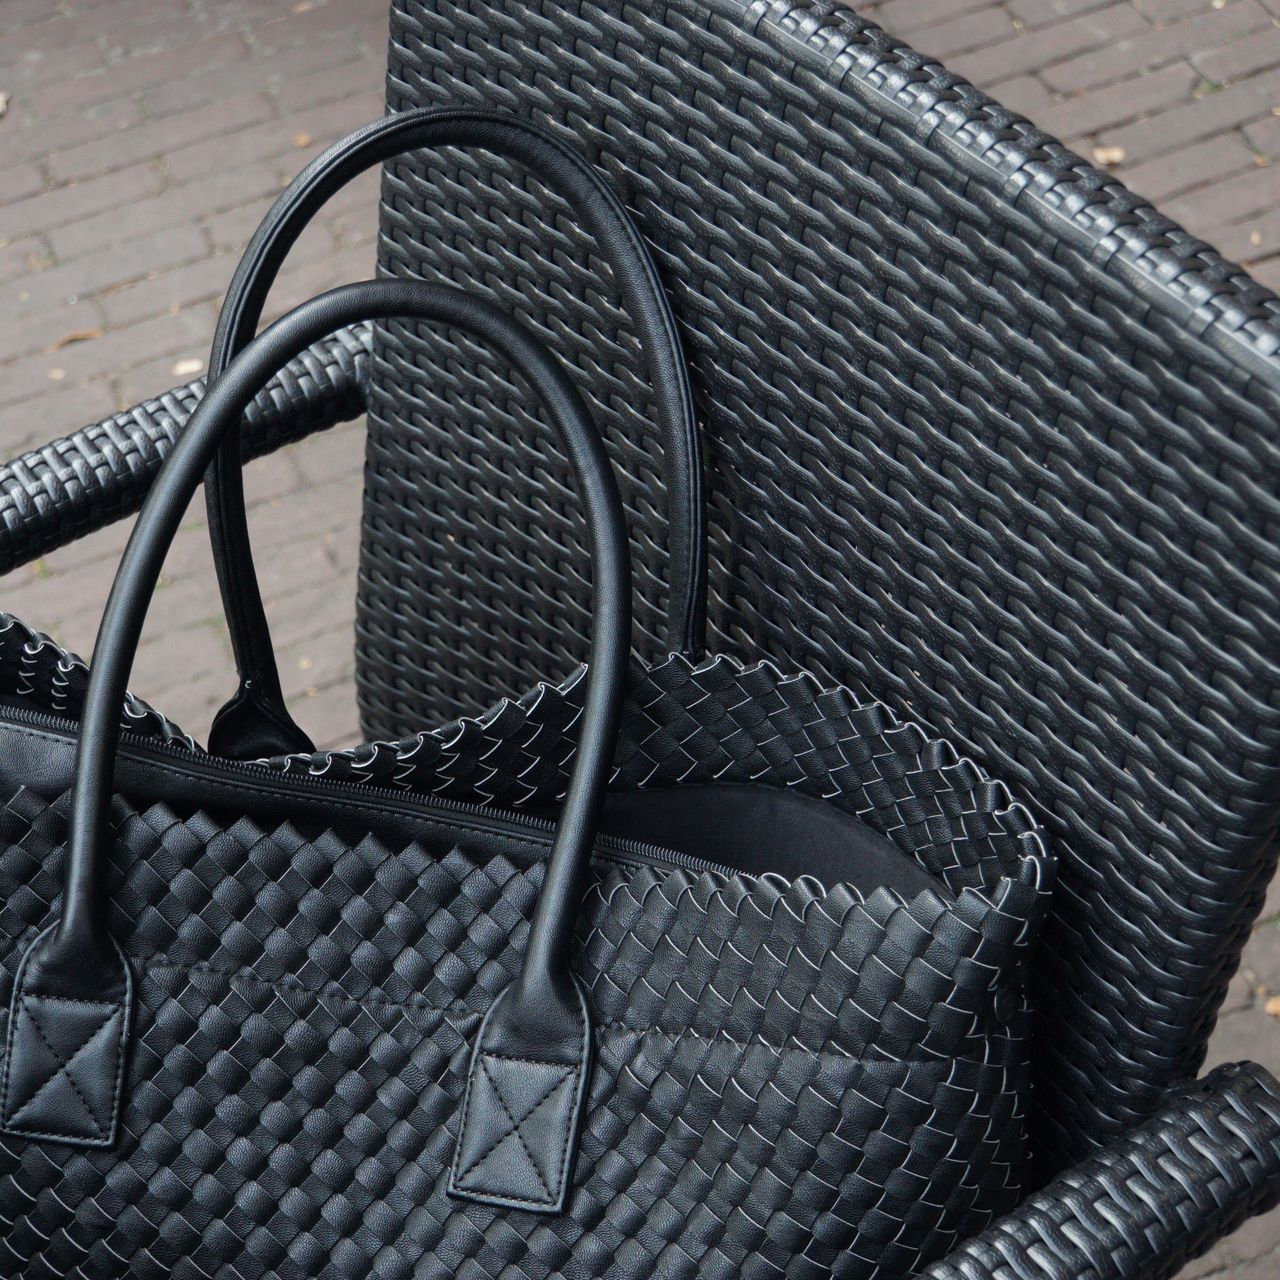 High Angle View Of Black Textured Purse On Wicker Armchair